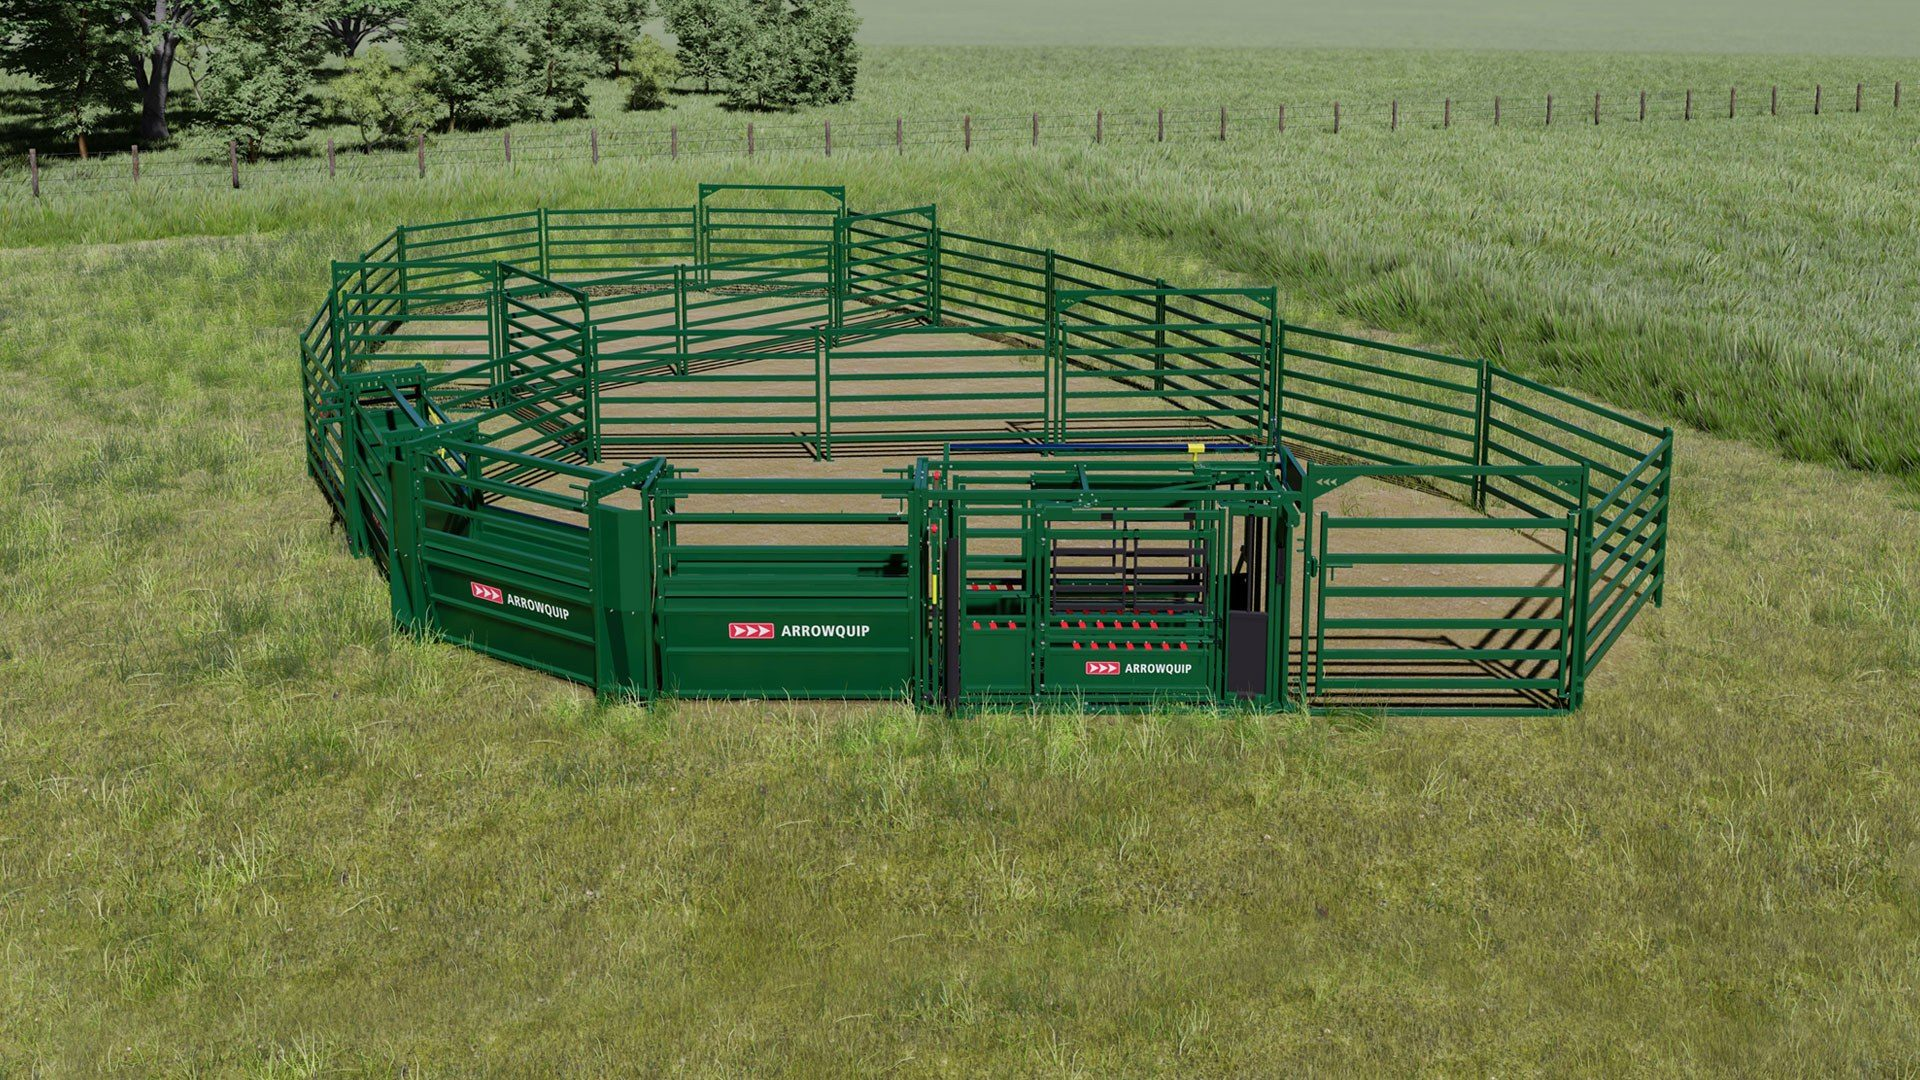 Custom cattle corral system design with cattle corral panels and squeeze chute